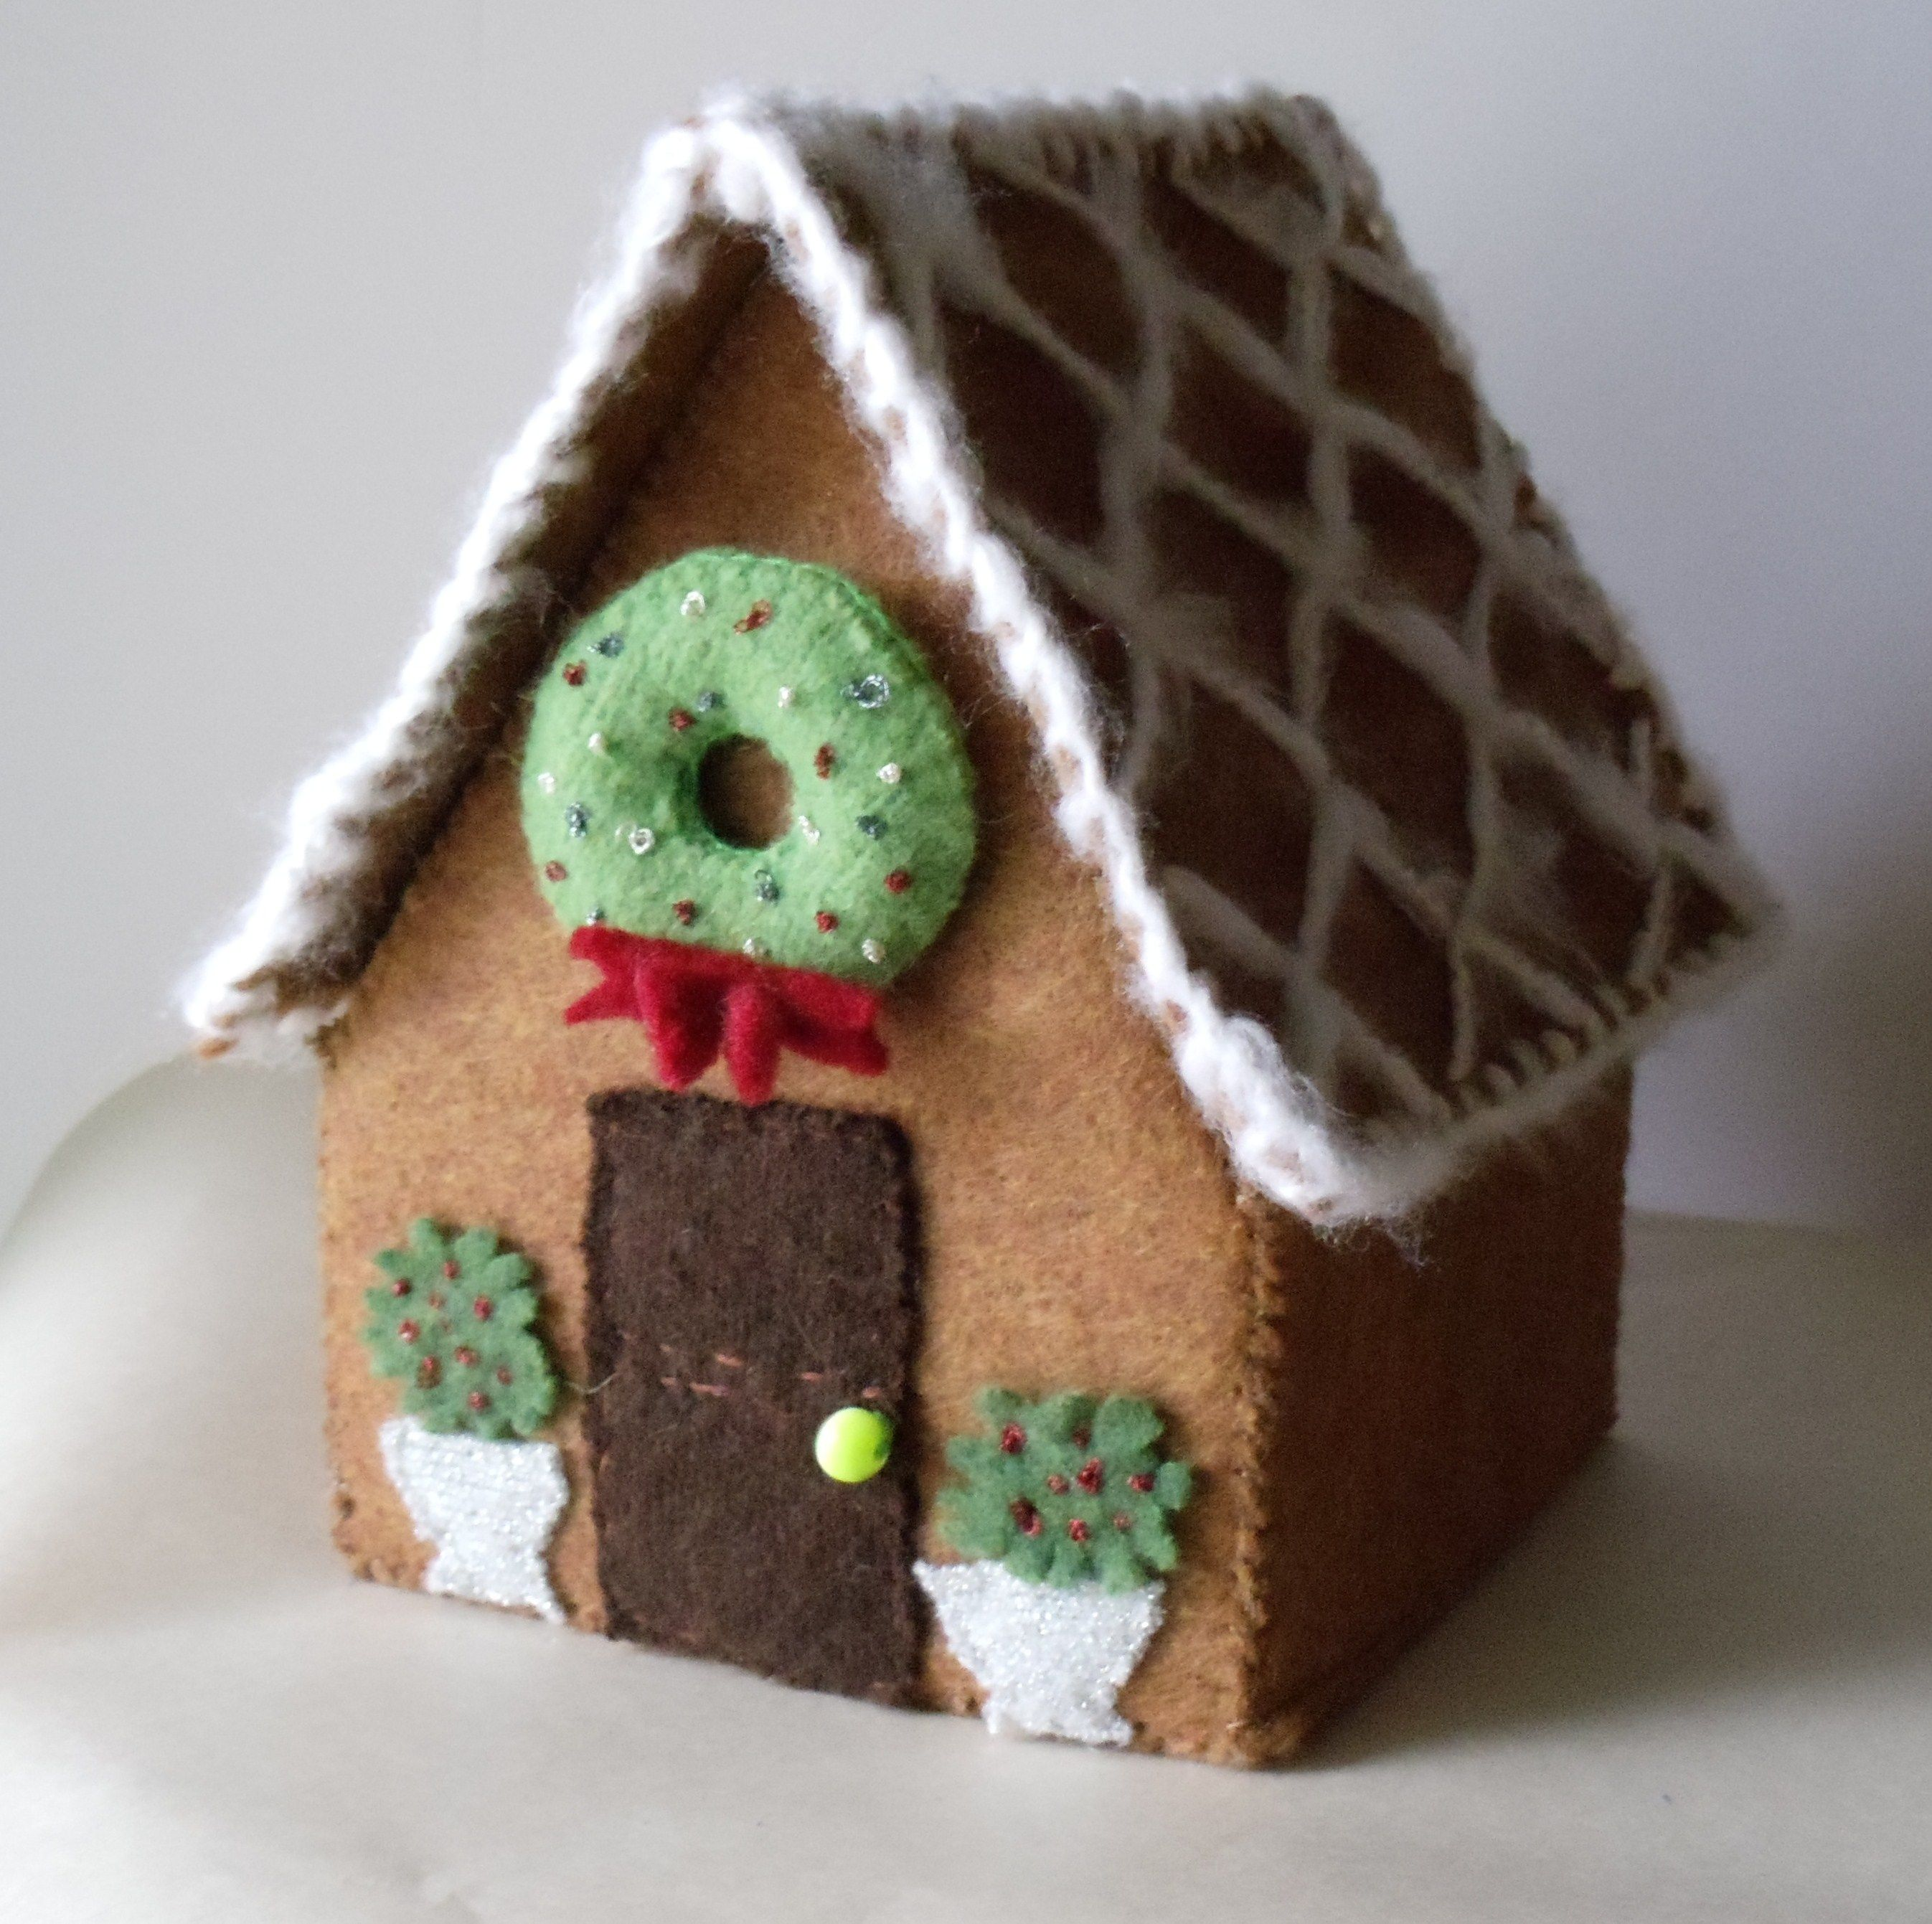 Handmade Gingerbread House From Felt Felt Crafts Christmas Felt